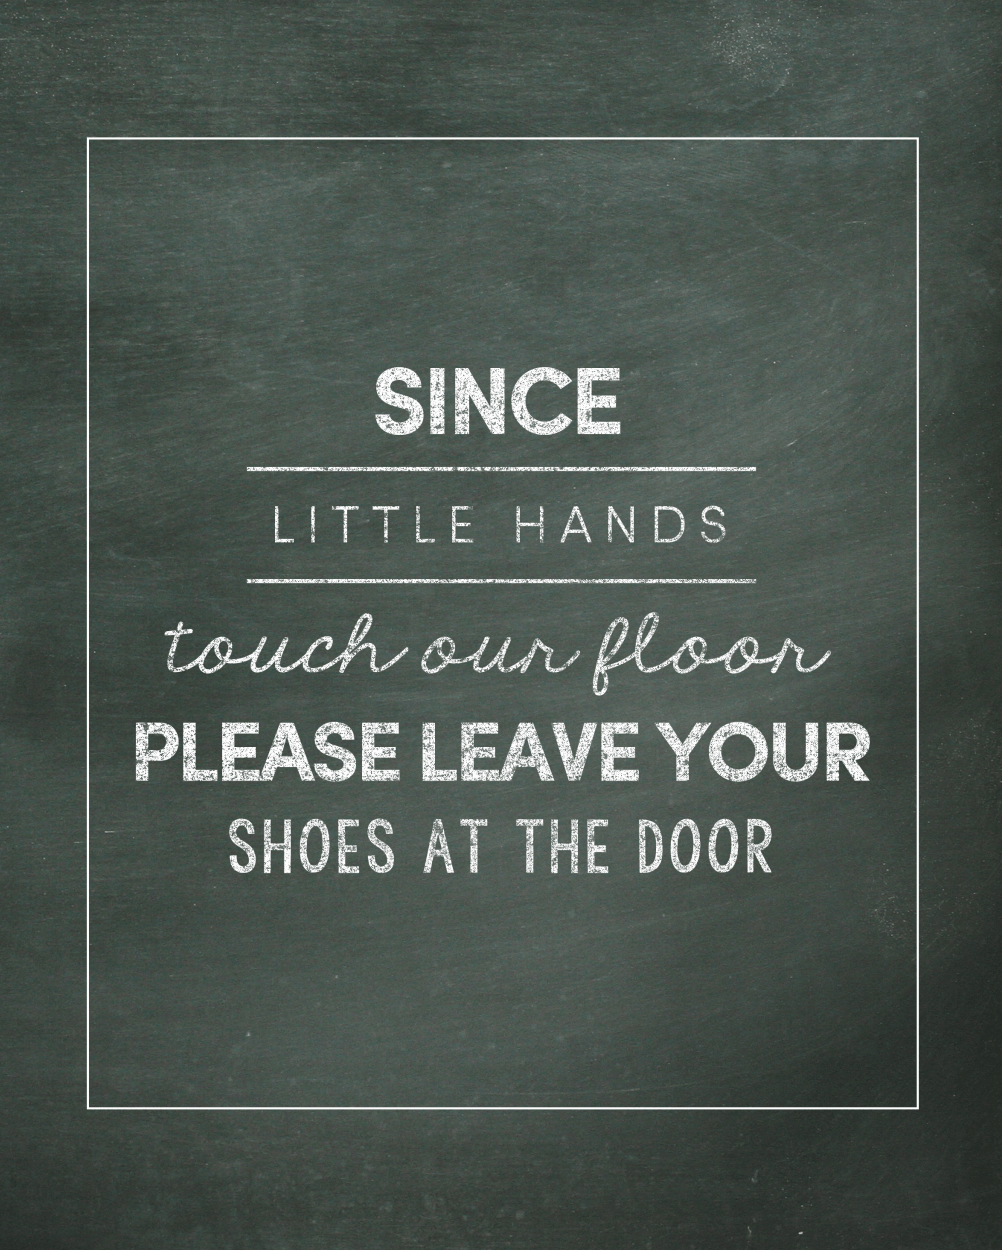 Since little hands touch our floor, please leave your shoes at the door. FREE PRINT to download and display in your home!